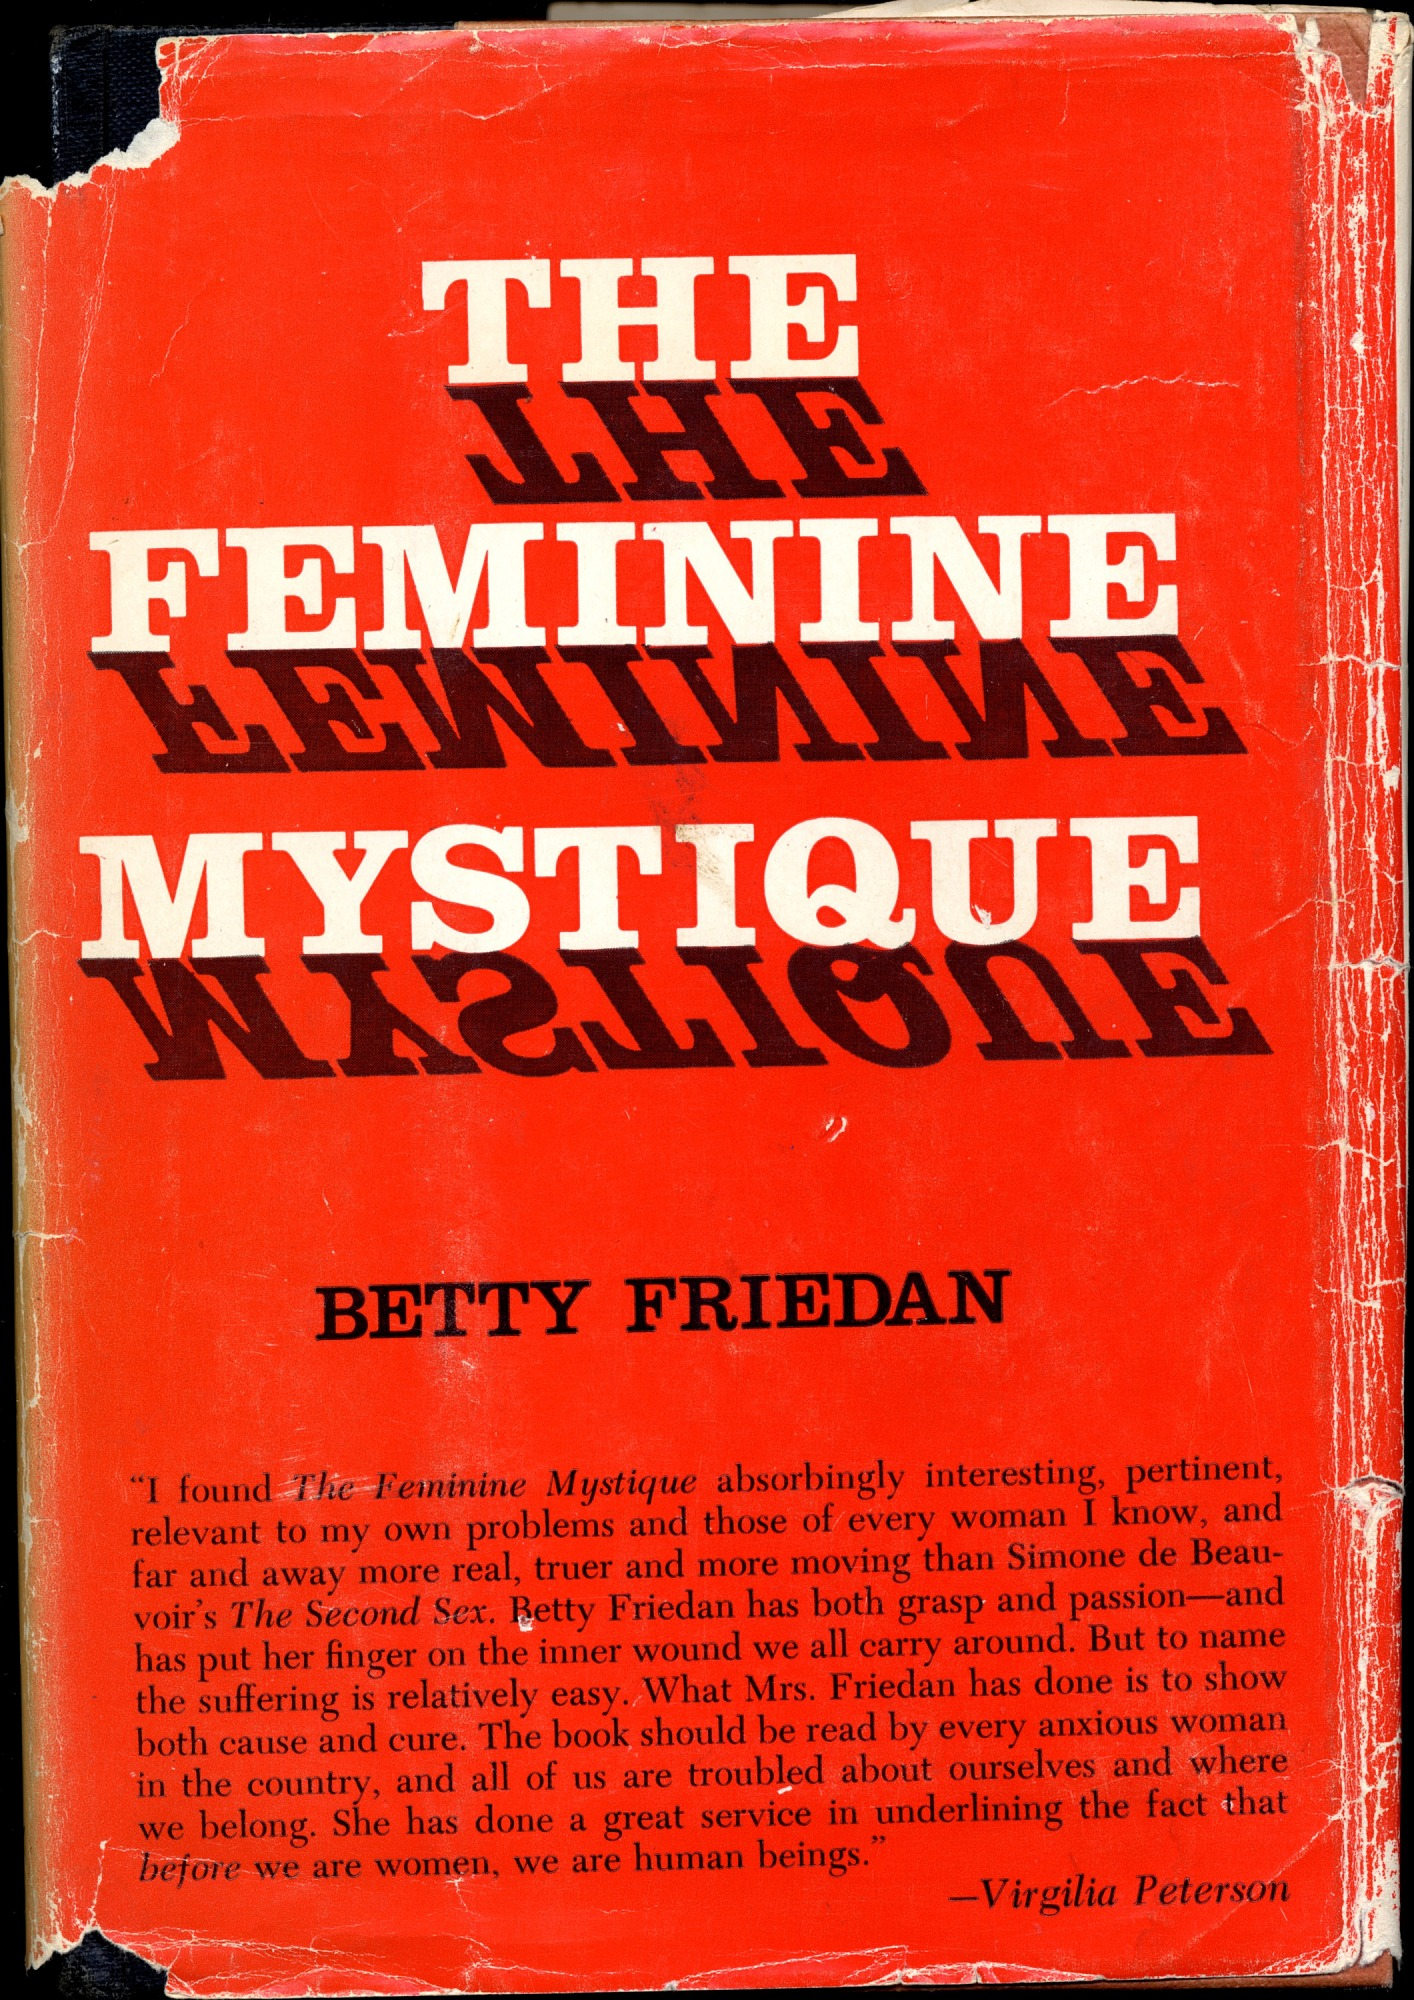 images for <i>The Feminine Mystique</i> by Betty Friedan